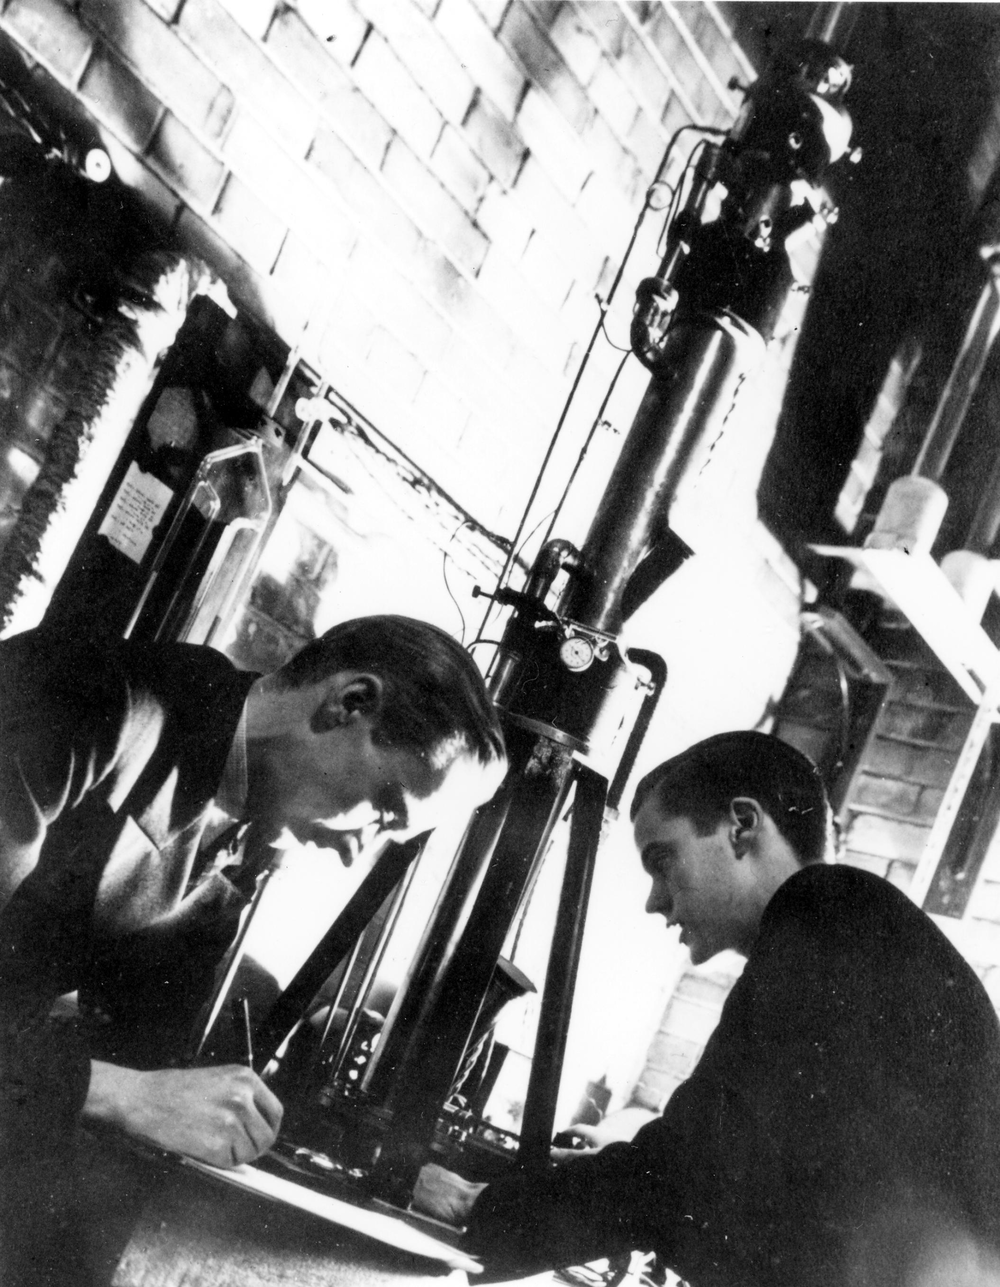 Figure 1: Prebus (left) and Hillier (right) working on their electron microscope in 1938. (Photo credit: https://www.physics.utoronto.ca/physics-at-uoft/history/the-electron-microscope/Web%20Image_1C.jpg)